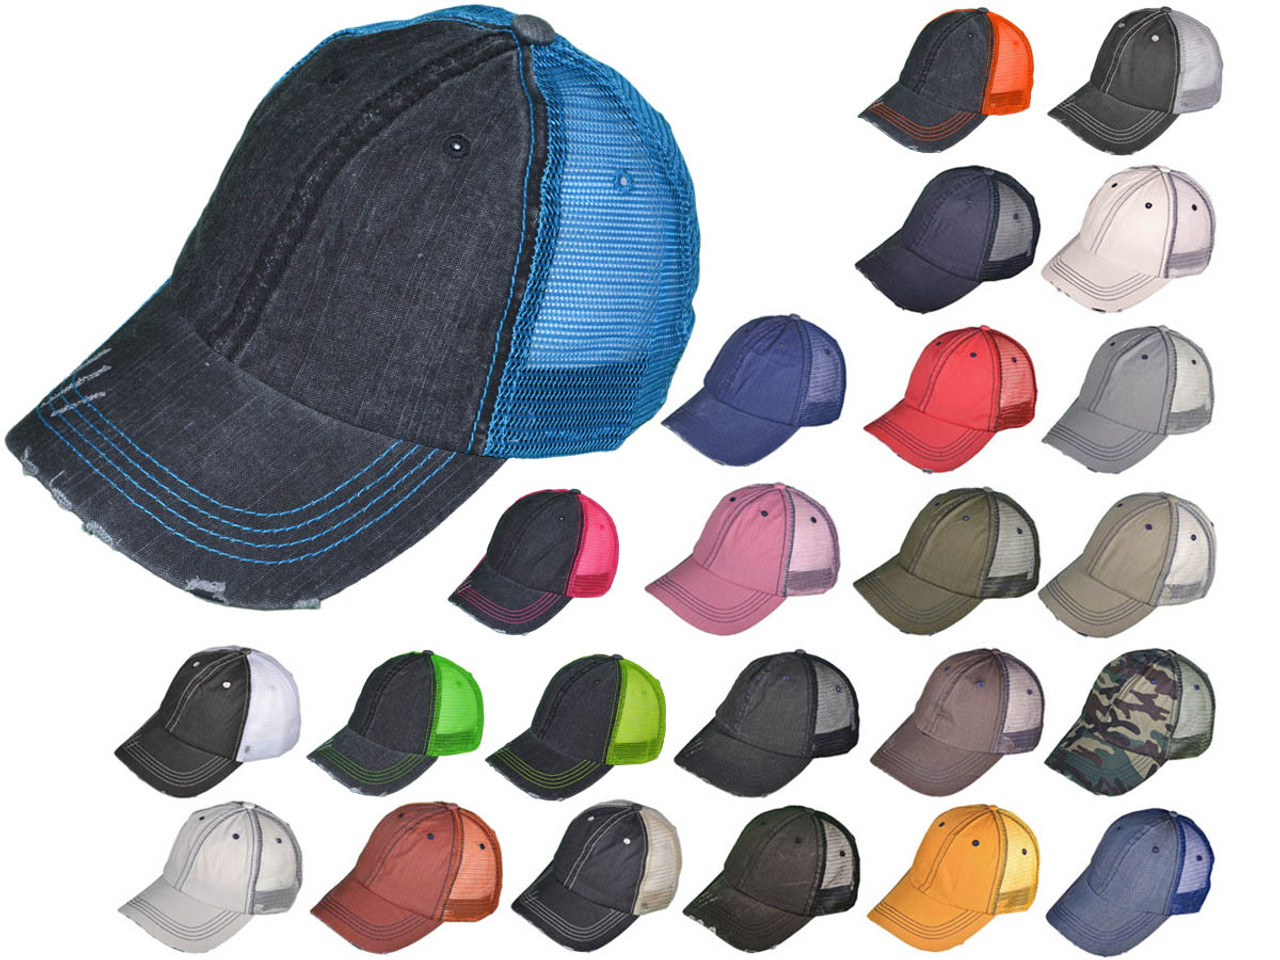 33ecbbb76a9 ... Low Profile Unstructured Washed Frayed Cotton Blend Twill Mesh BK Caps  (24 Colors) - 21504 · Vintage Distressed Trucker Hats